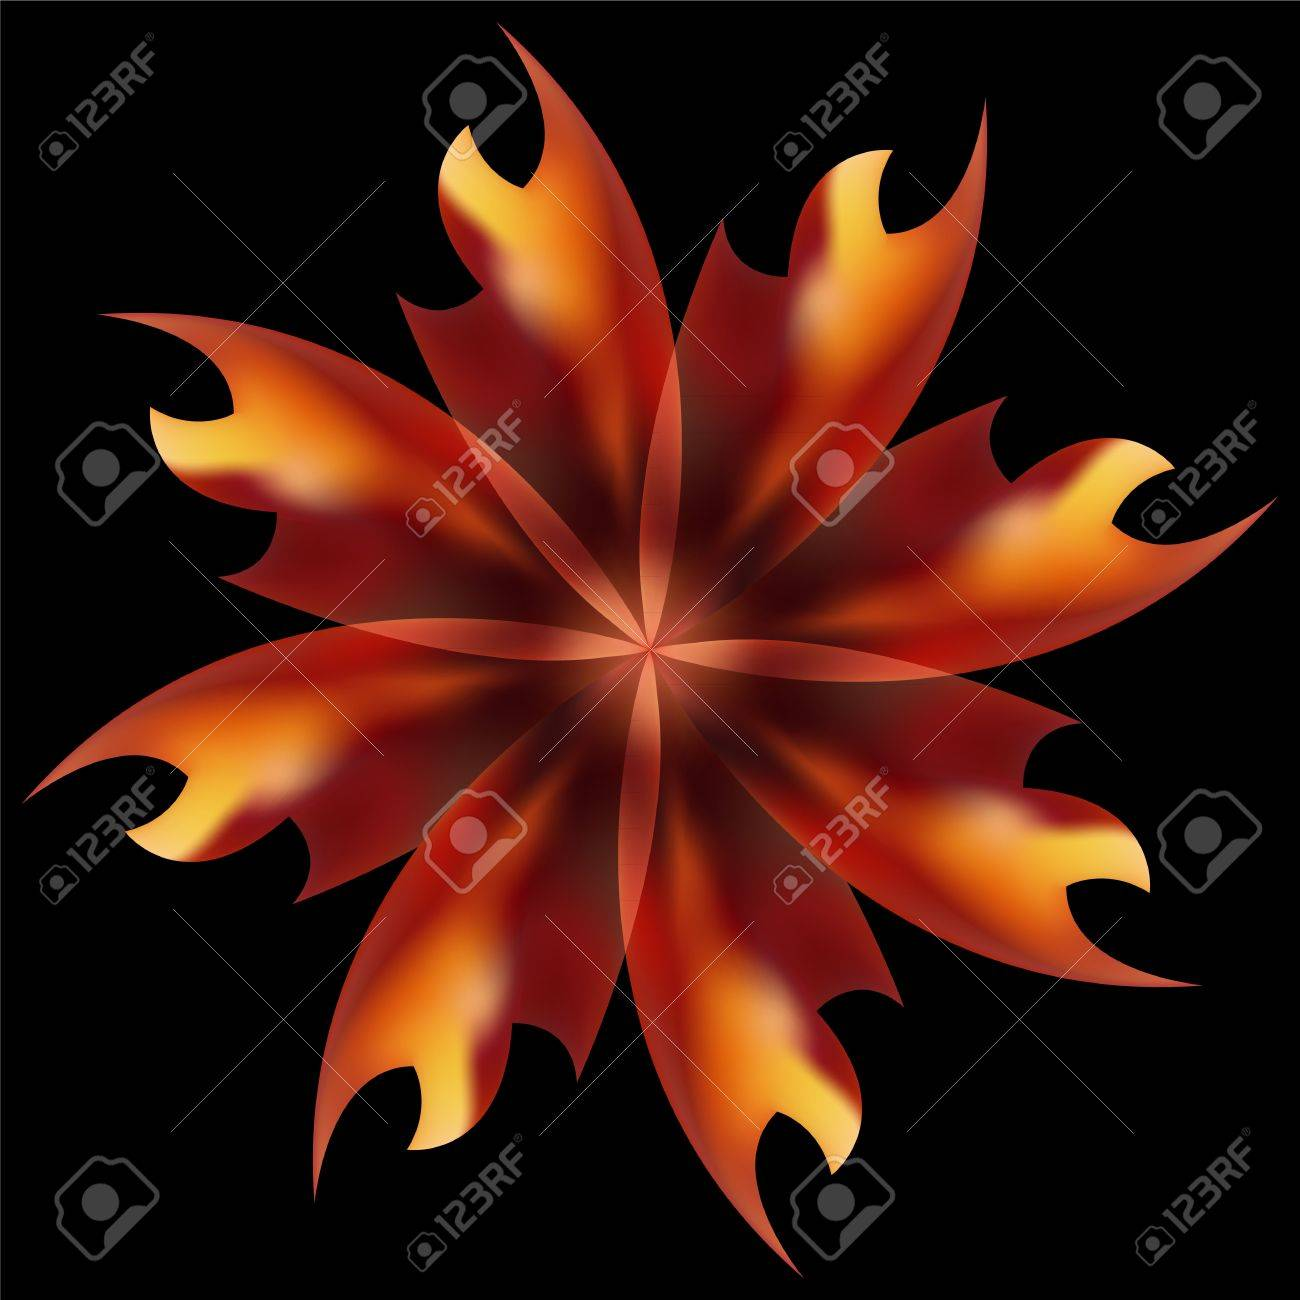 Rose petal Fire flaming flower on black background Stock Vector - 17695859